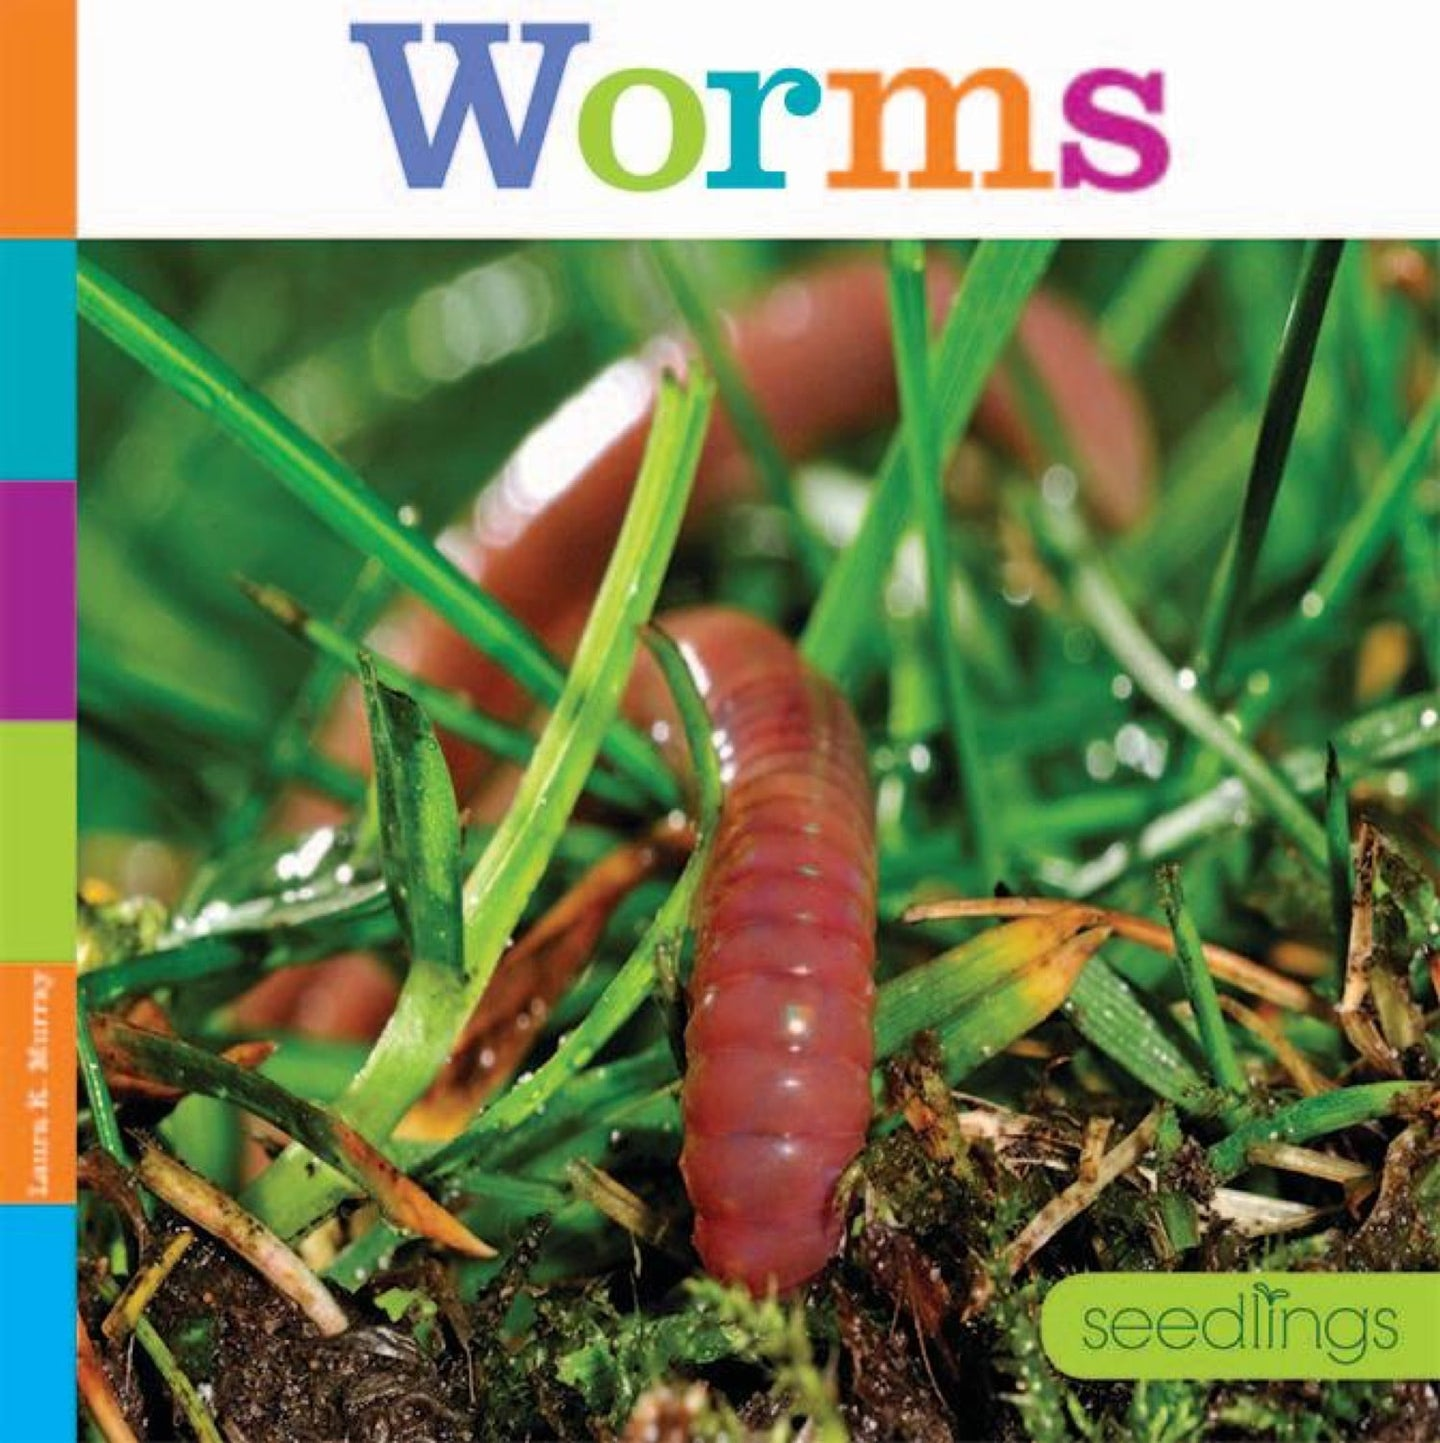 Seedlings: Worms